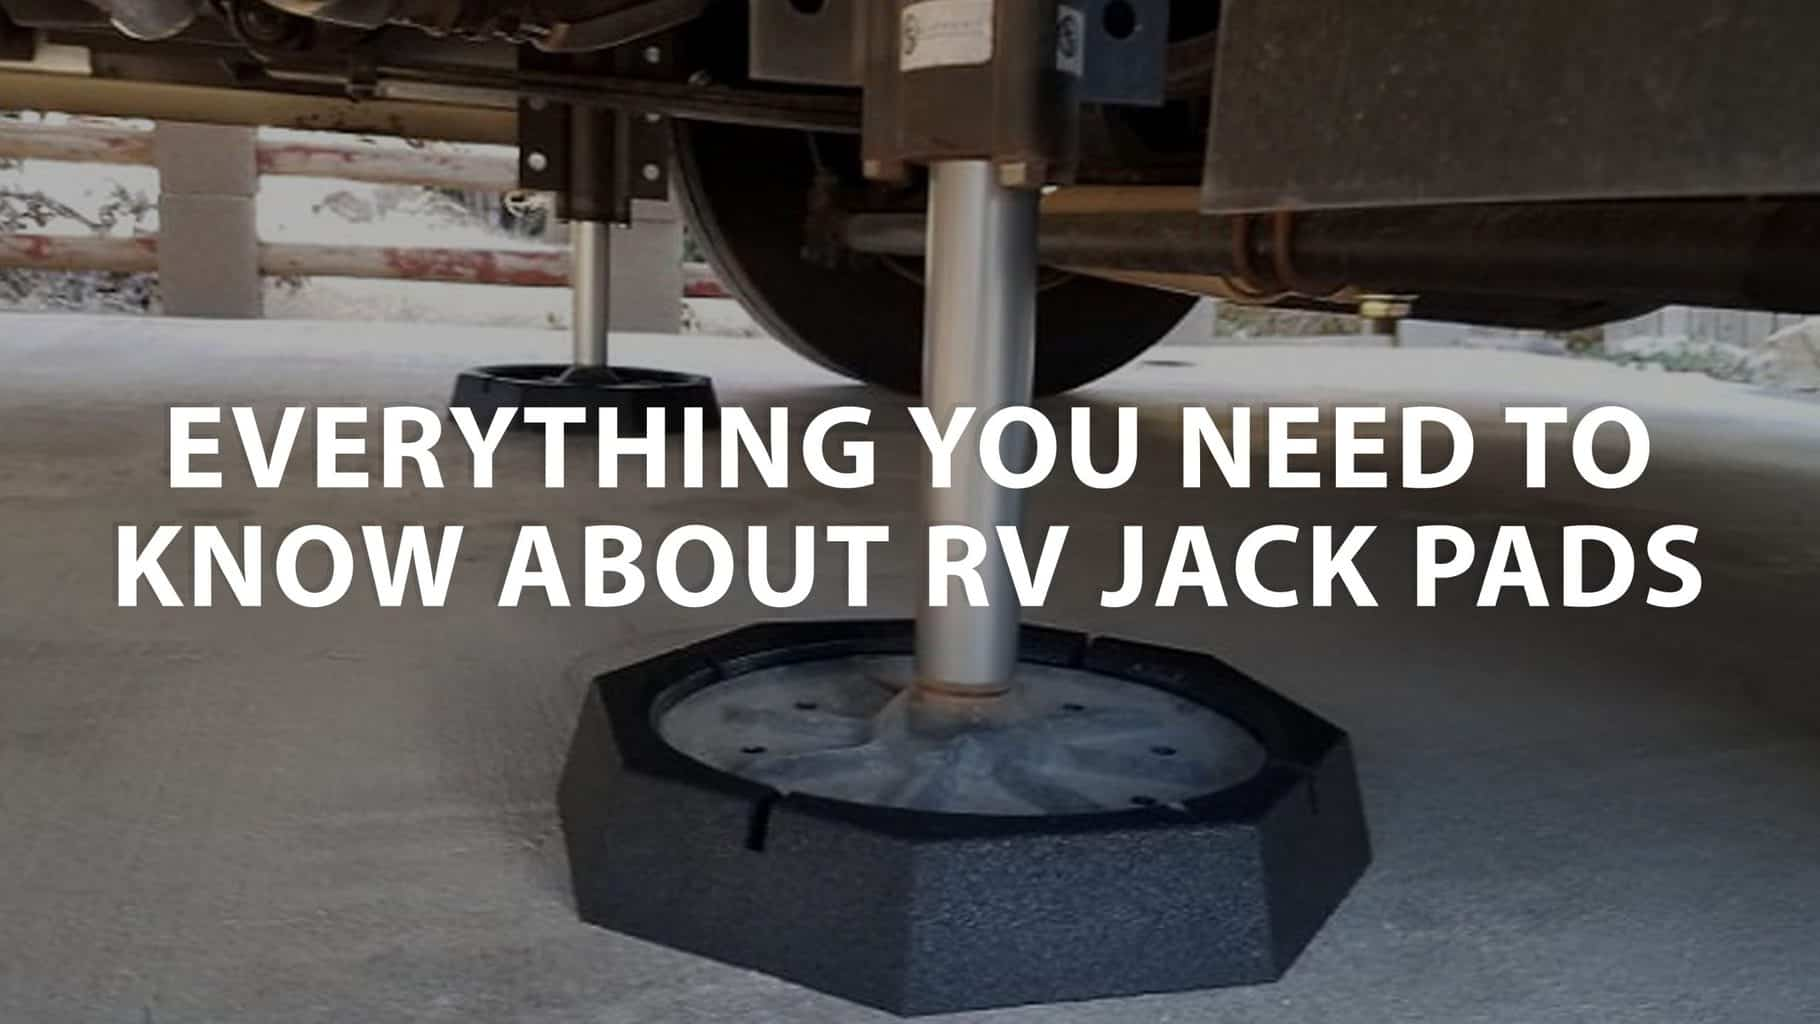 featured image on Everything you need to know about RV jack pads